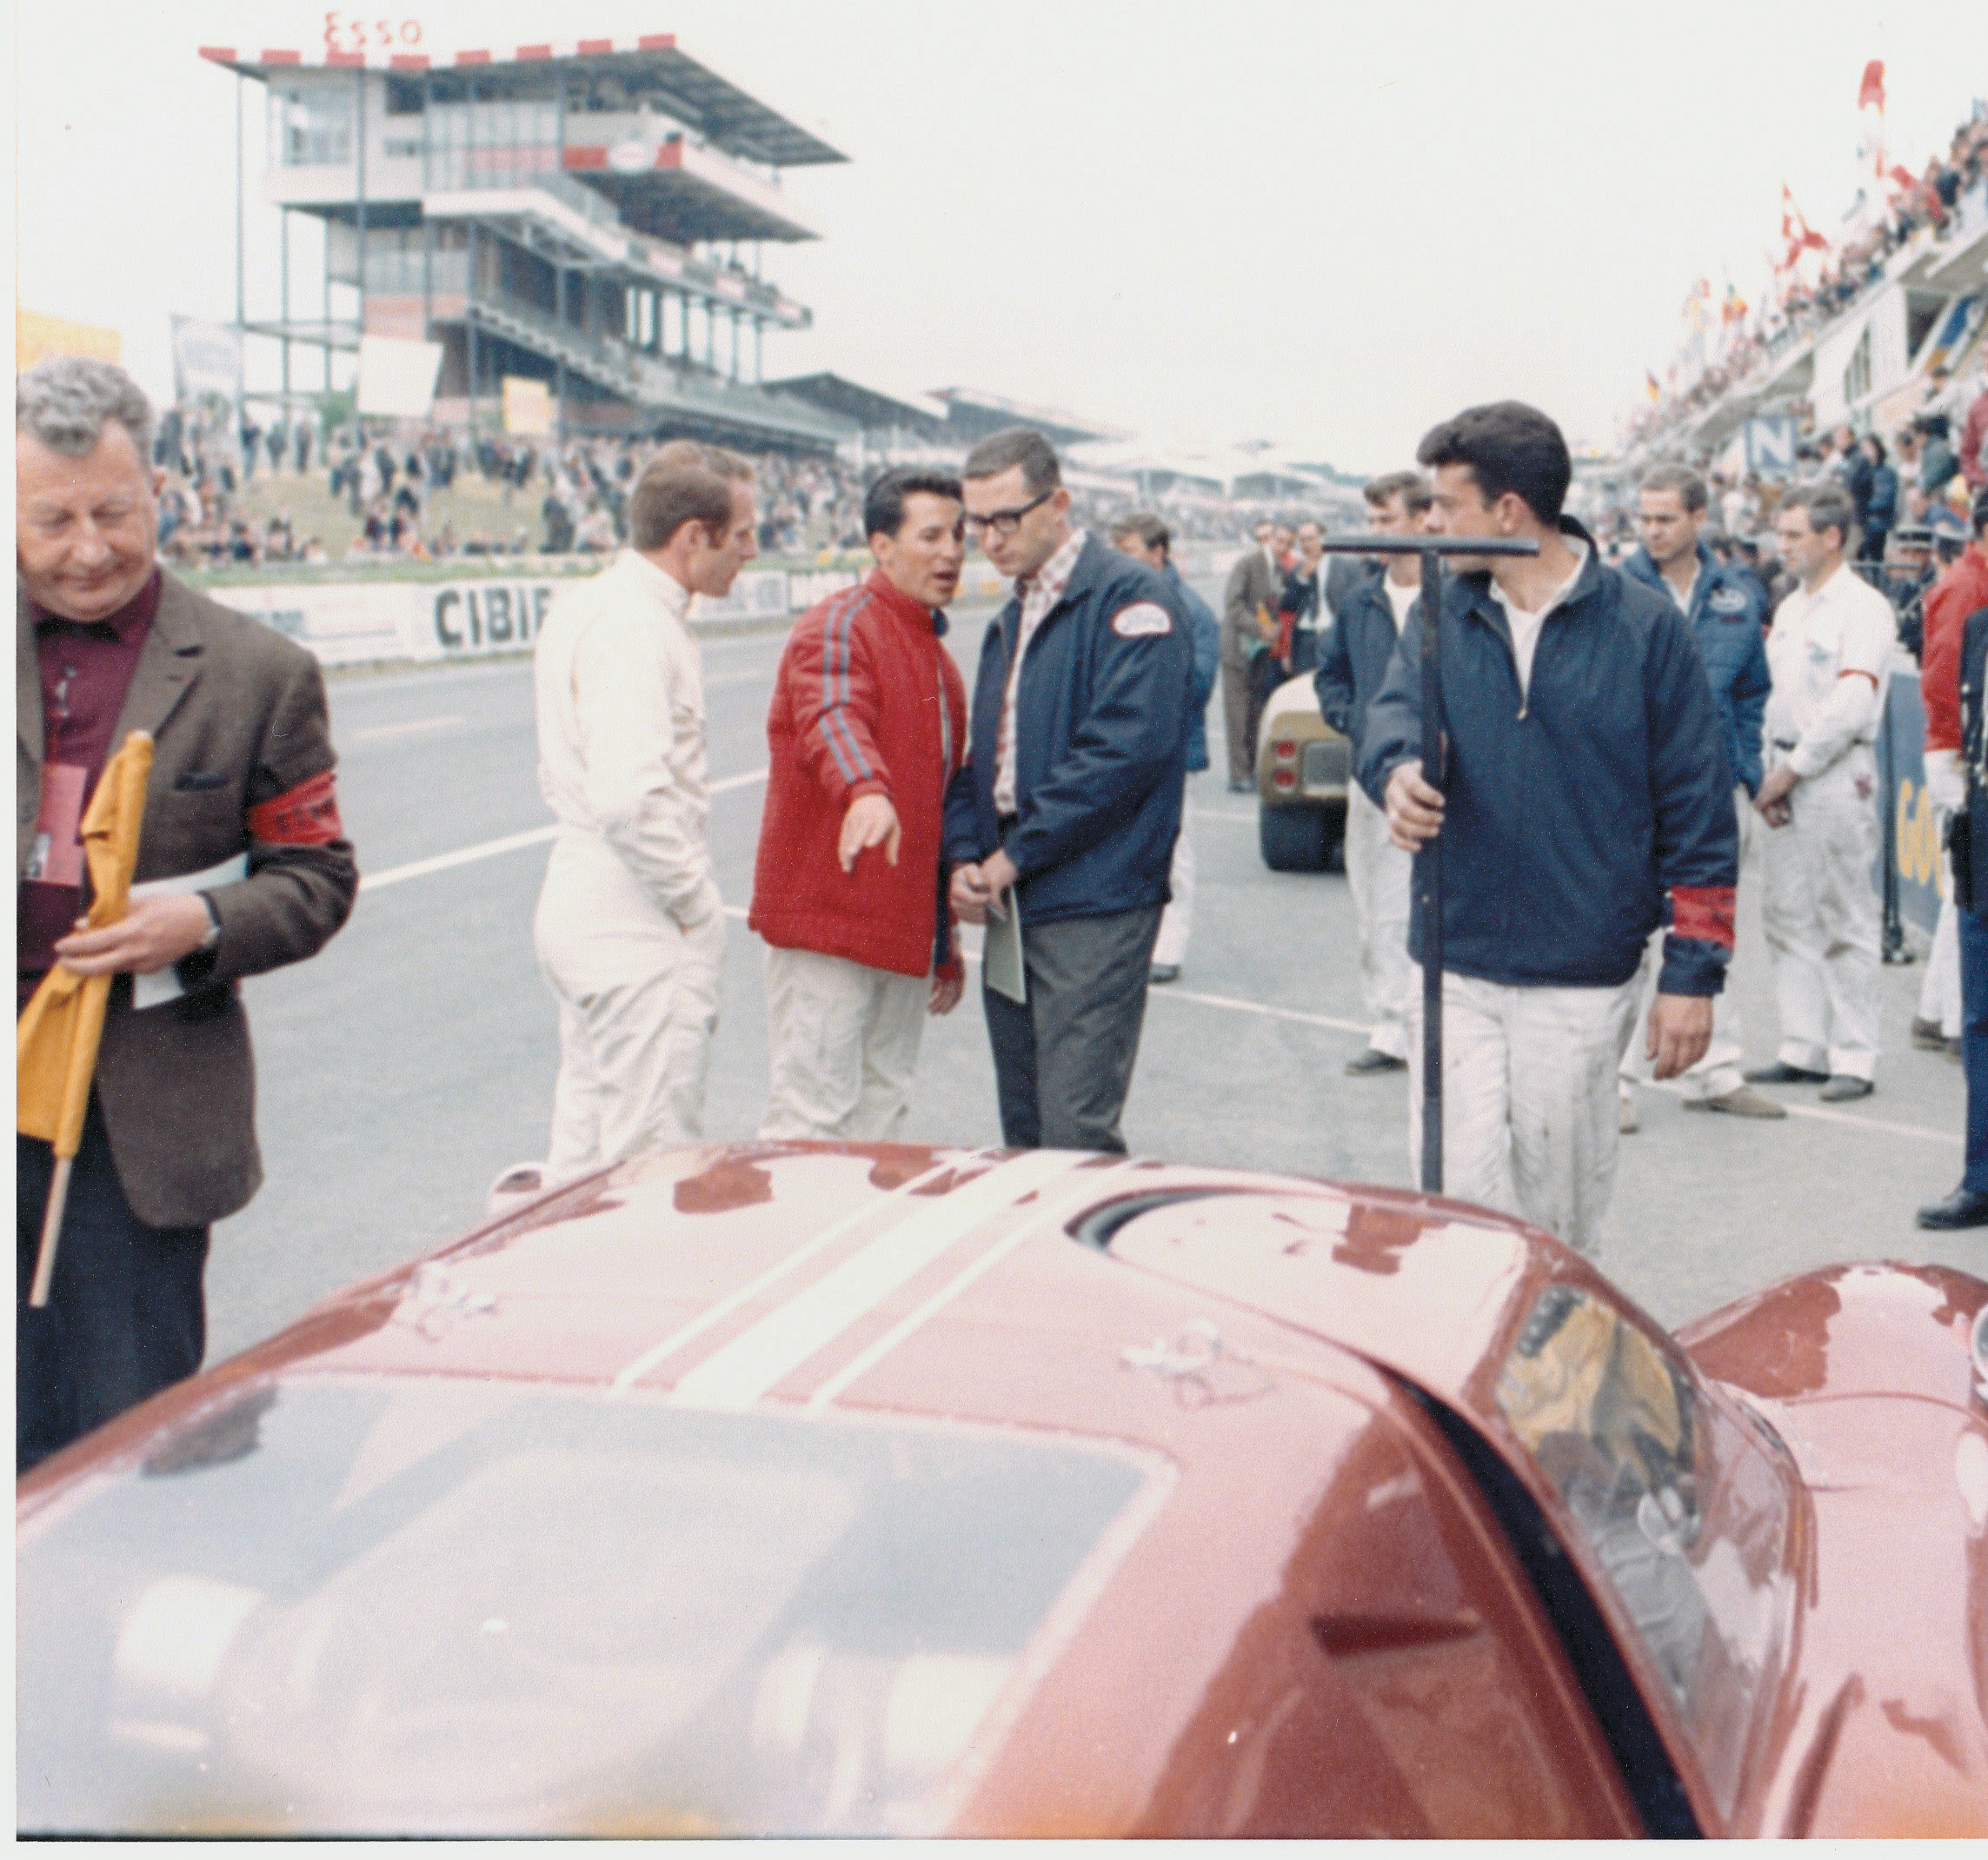 Mario Andretti (in the red jacket) talks to Holman & Moody team manager John Wanderer while co-driver Lucien Bianchi listens in. Mike Teske Archives/Ford Motor Company